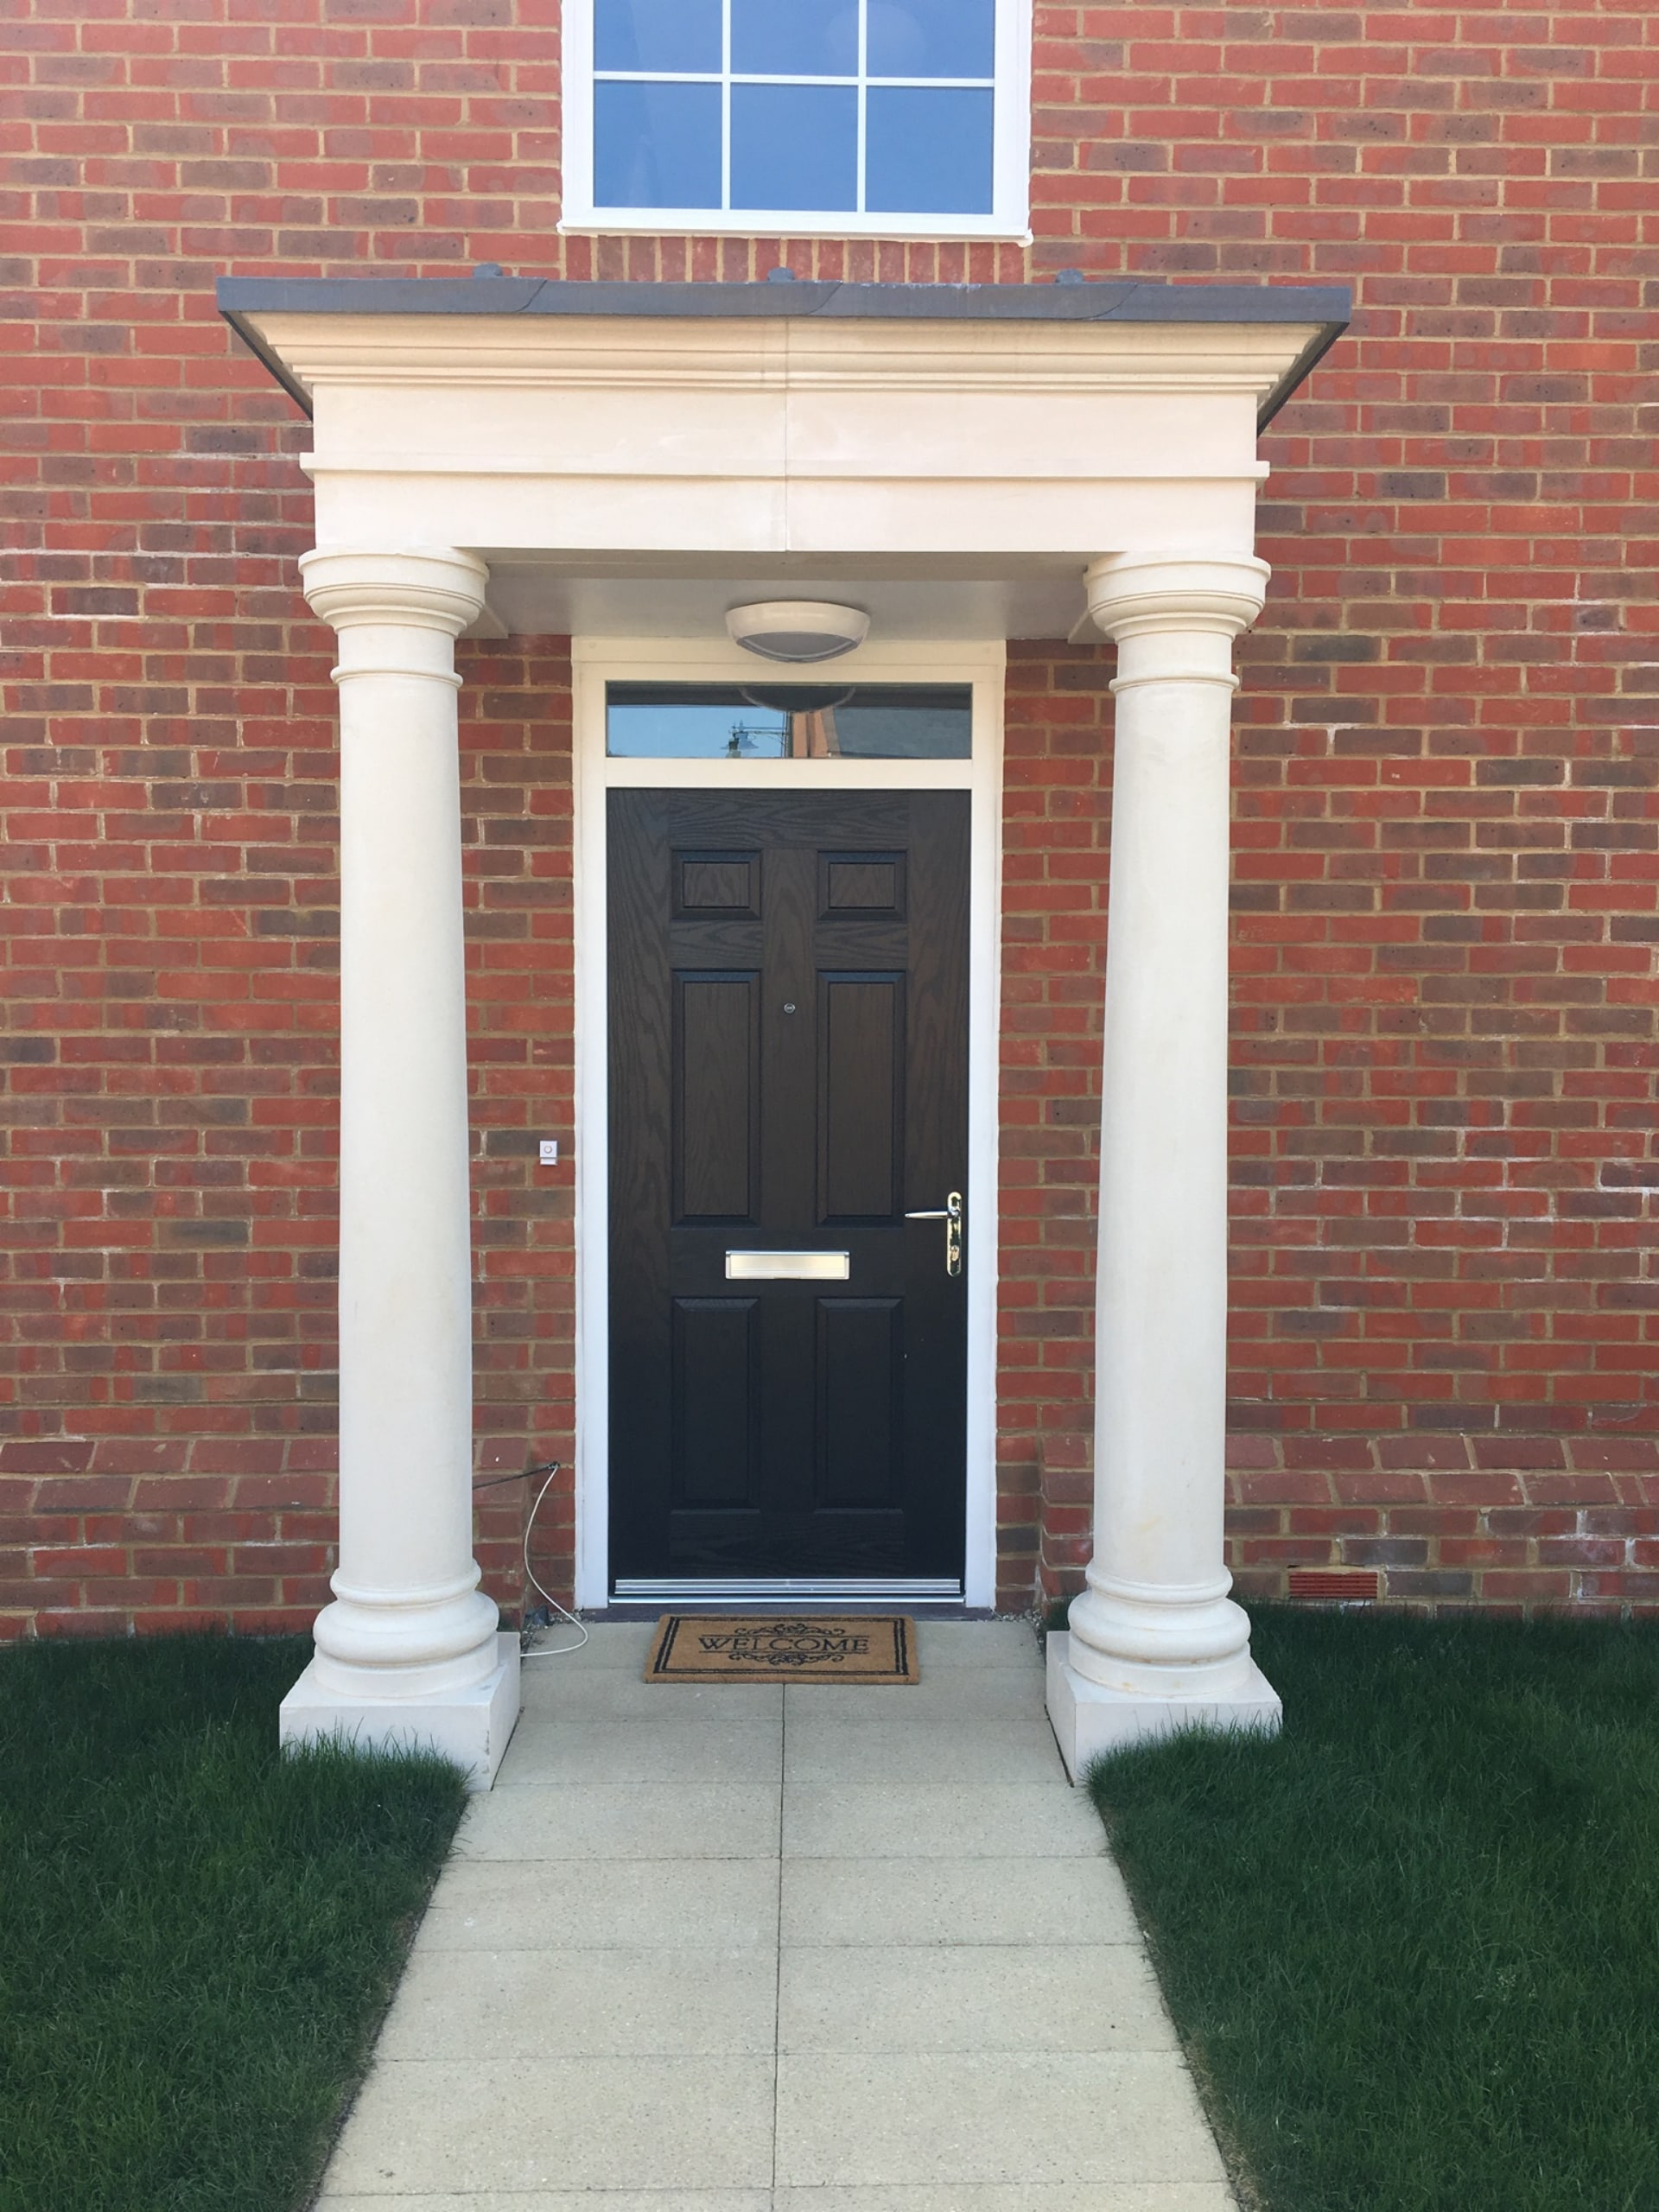 Beautiful stone portico ideas, porch pictures, and designs. For top kent entrance-porches built in the UK by Malling Masonry